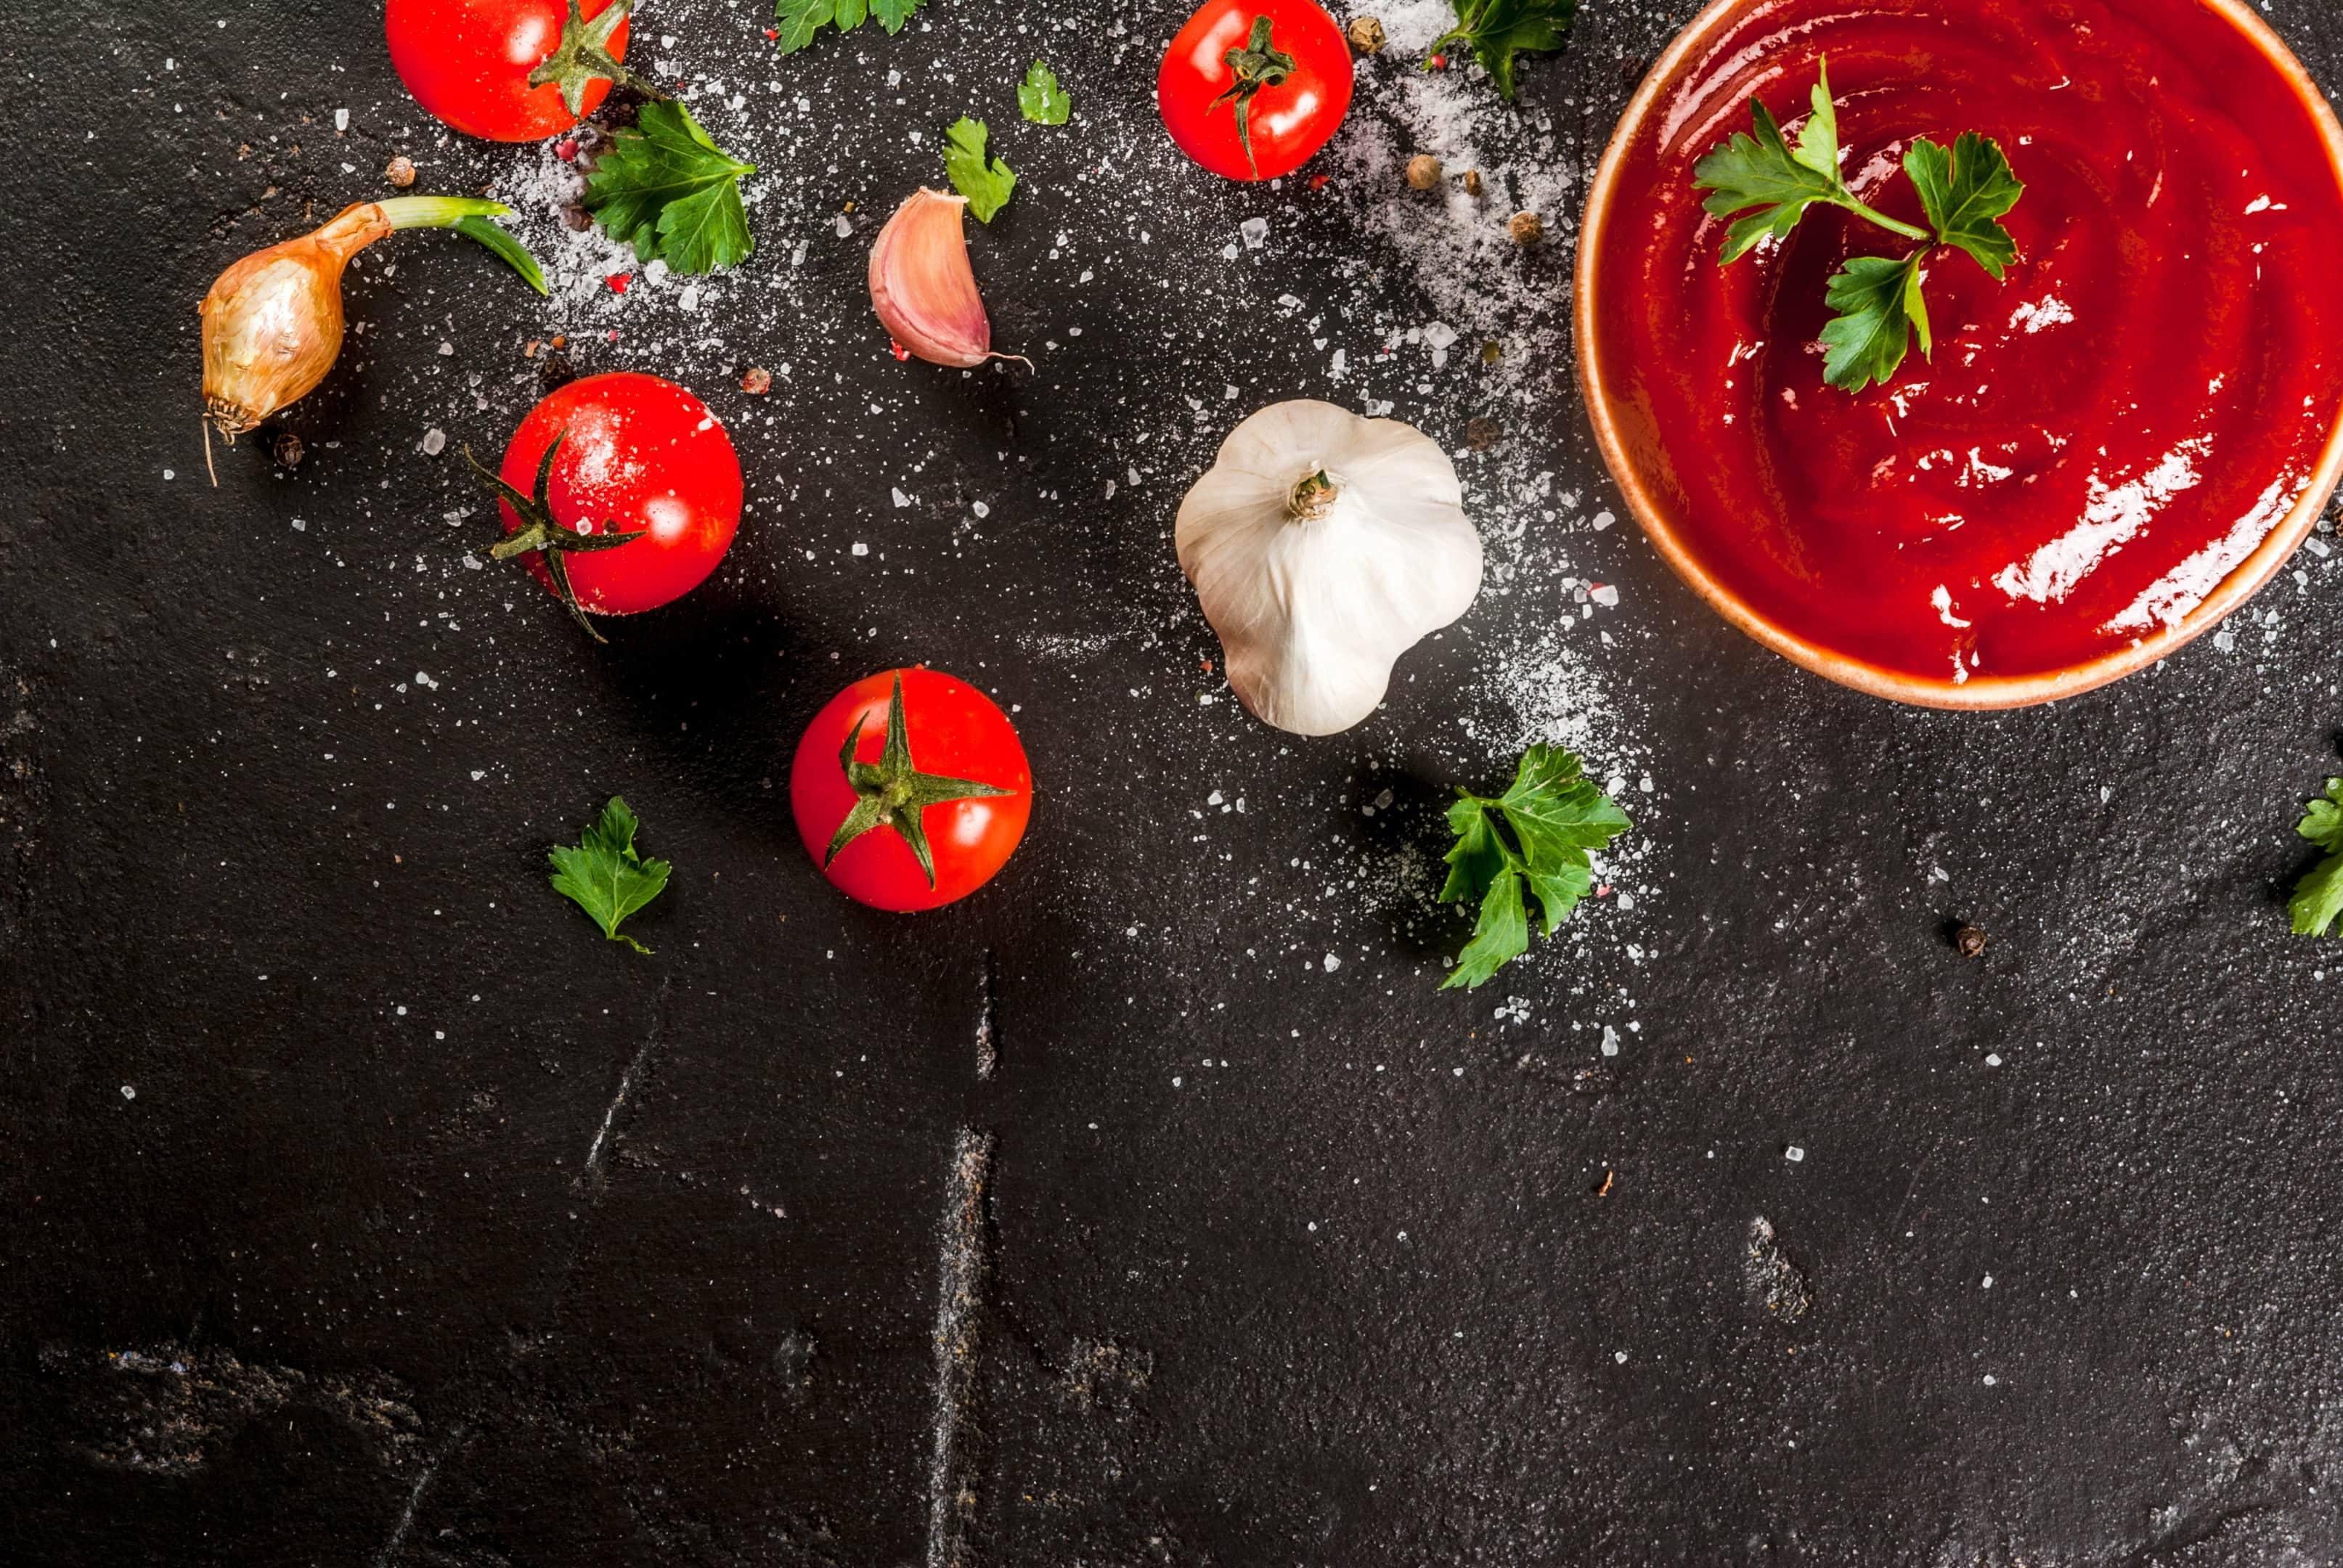 Tomato sauce ketchup with ingredients